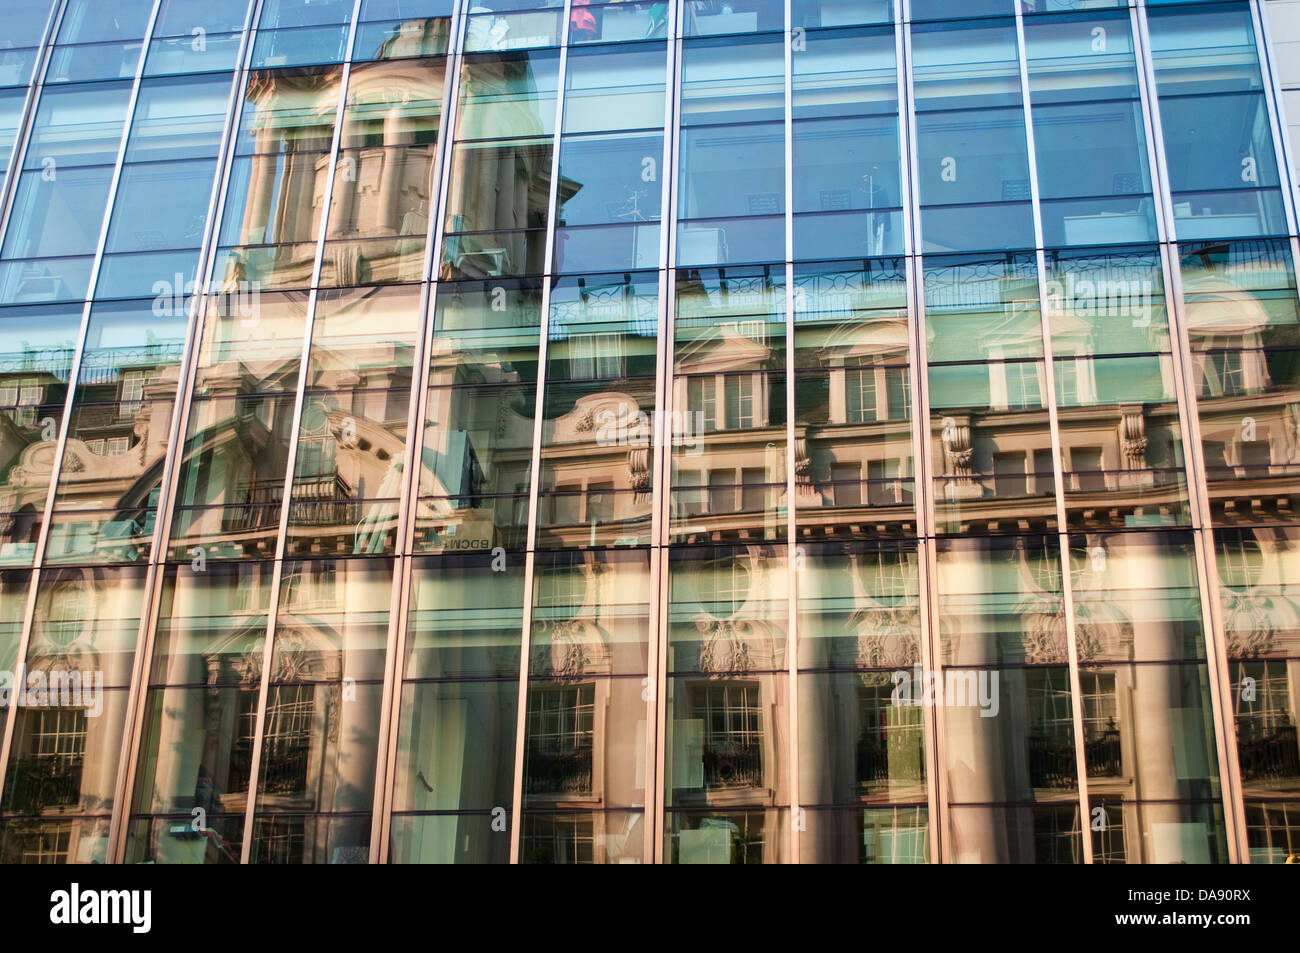 Reflections of an old building in a new glass building ...